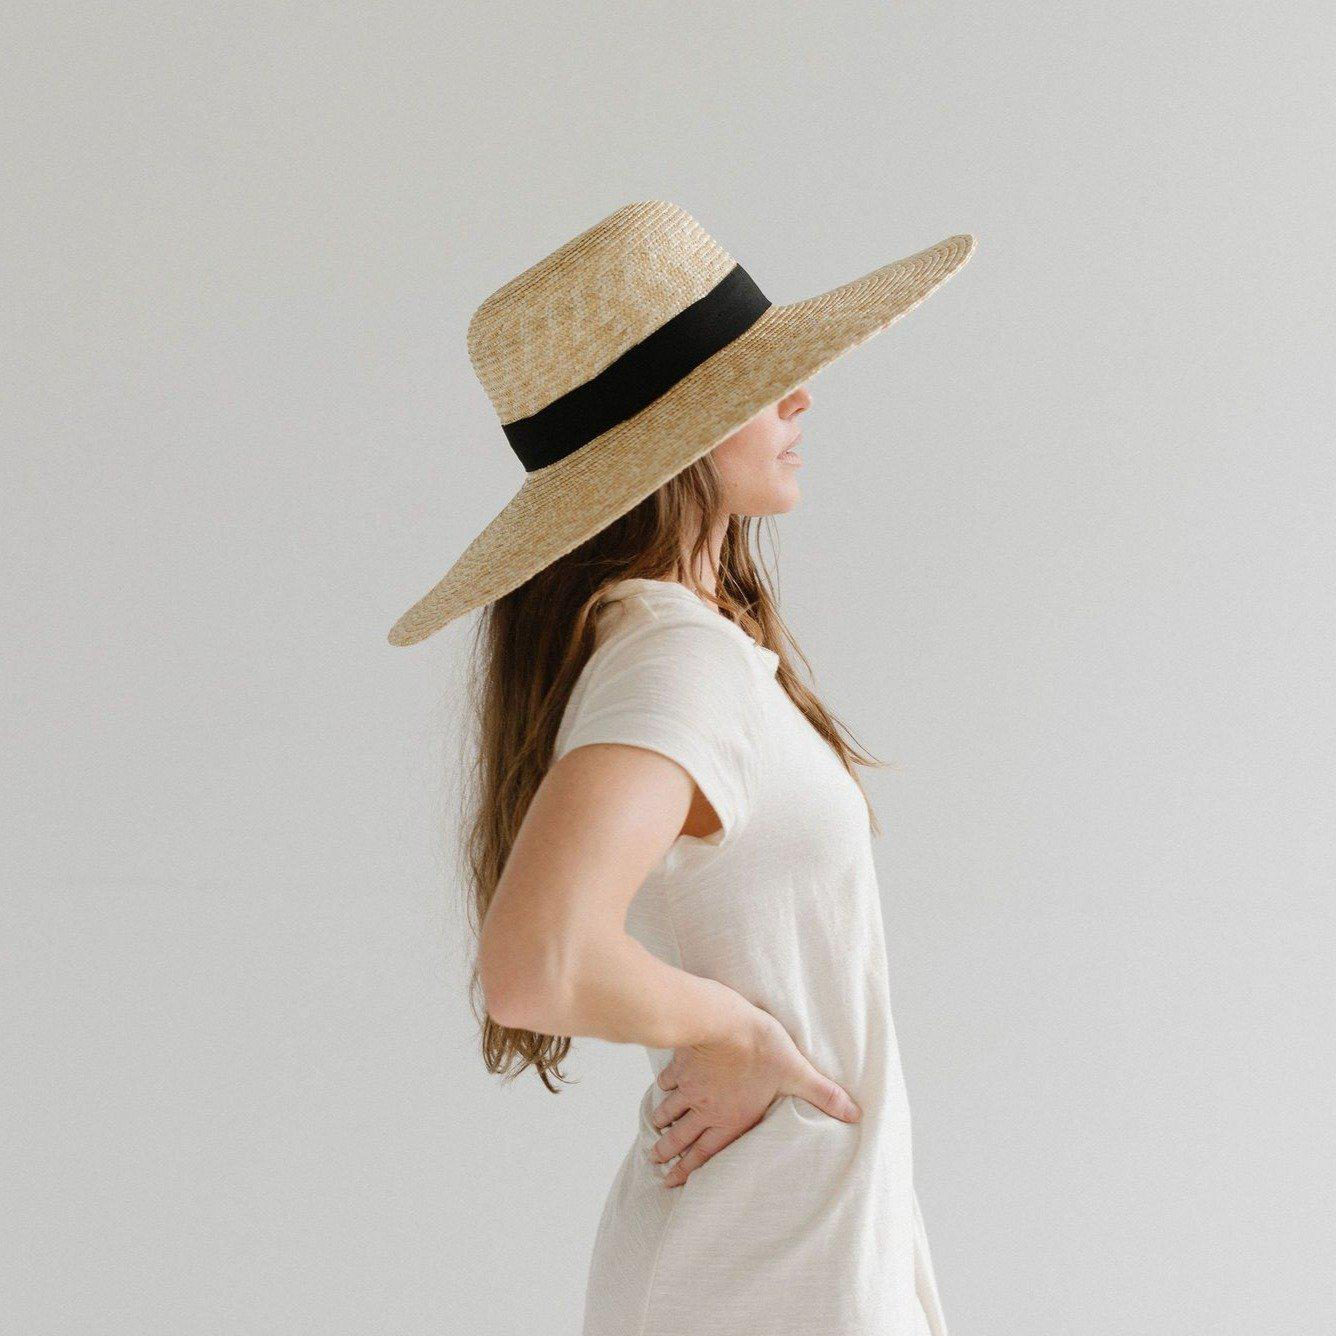 GIGI PIP Hats for Women- Gwen Wide Brim Sun Hat-Straw Hats